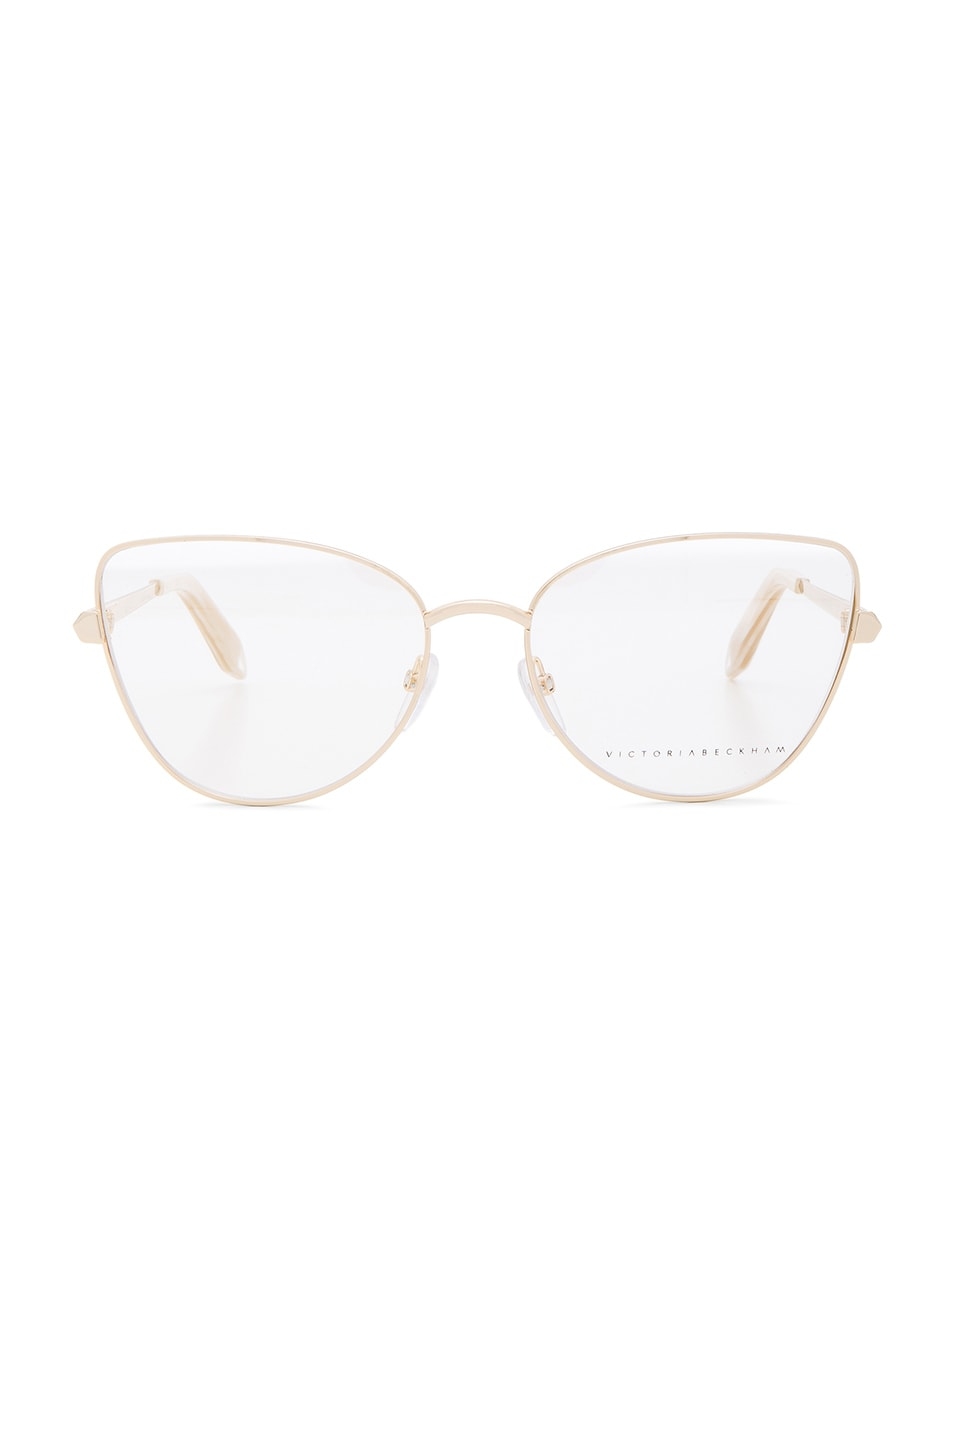 405e6d88d2 Image 1 of Victoria Beckham Fine Metal Butterfly Optical in Gold